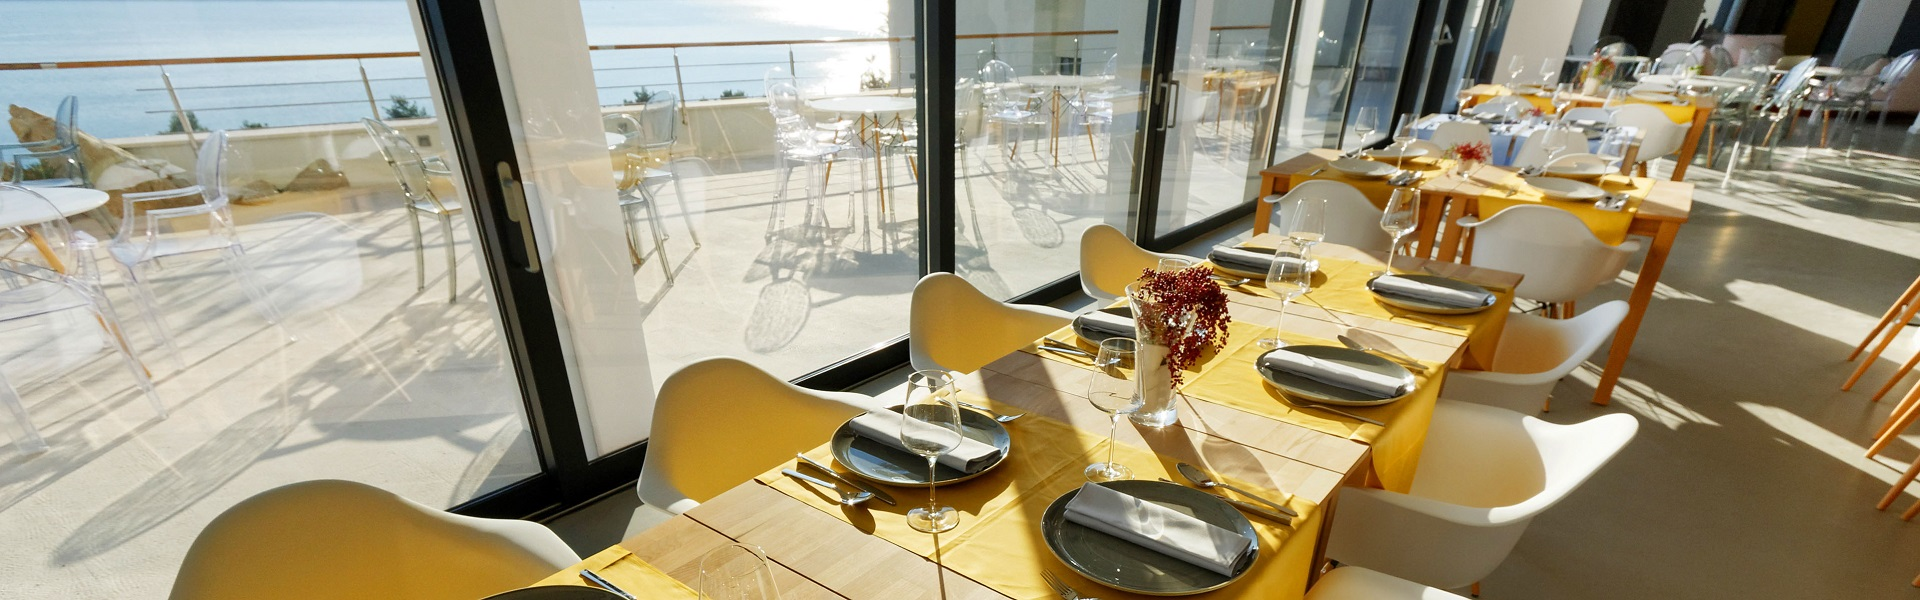 Croatia hotel restaurant with sea view